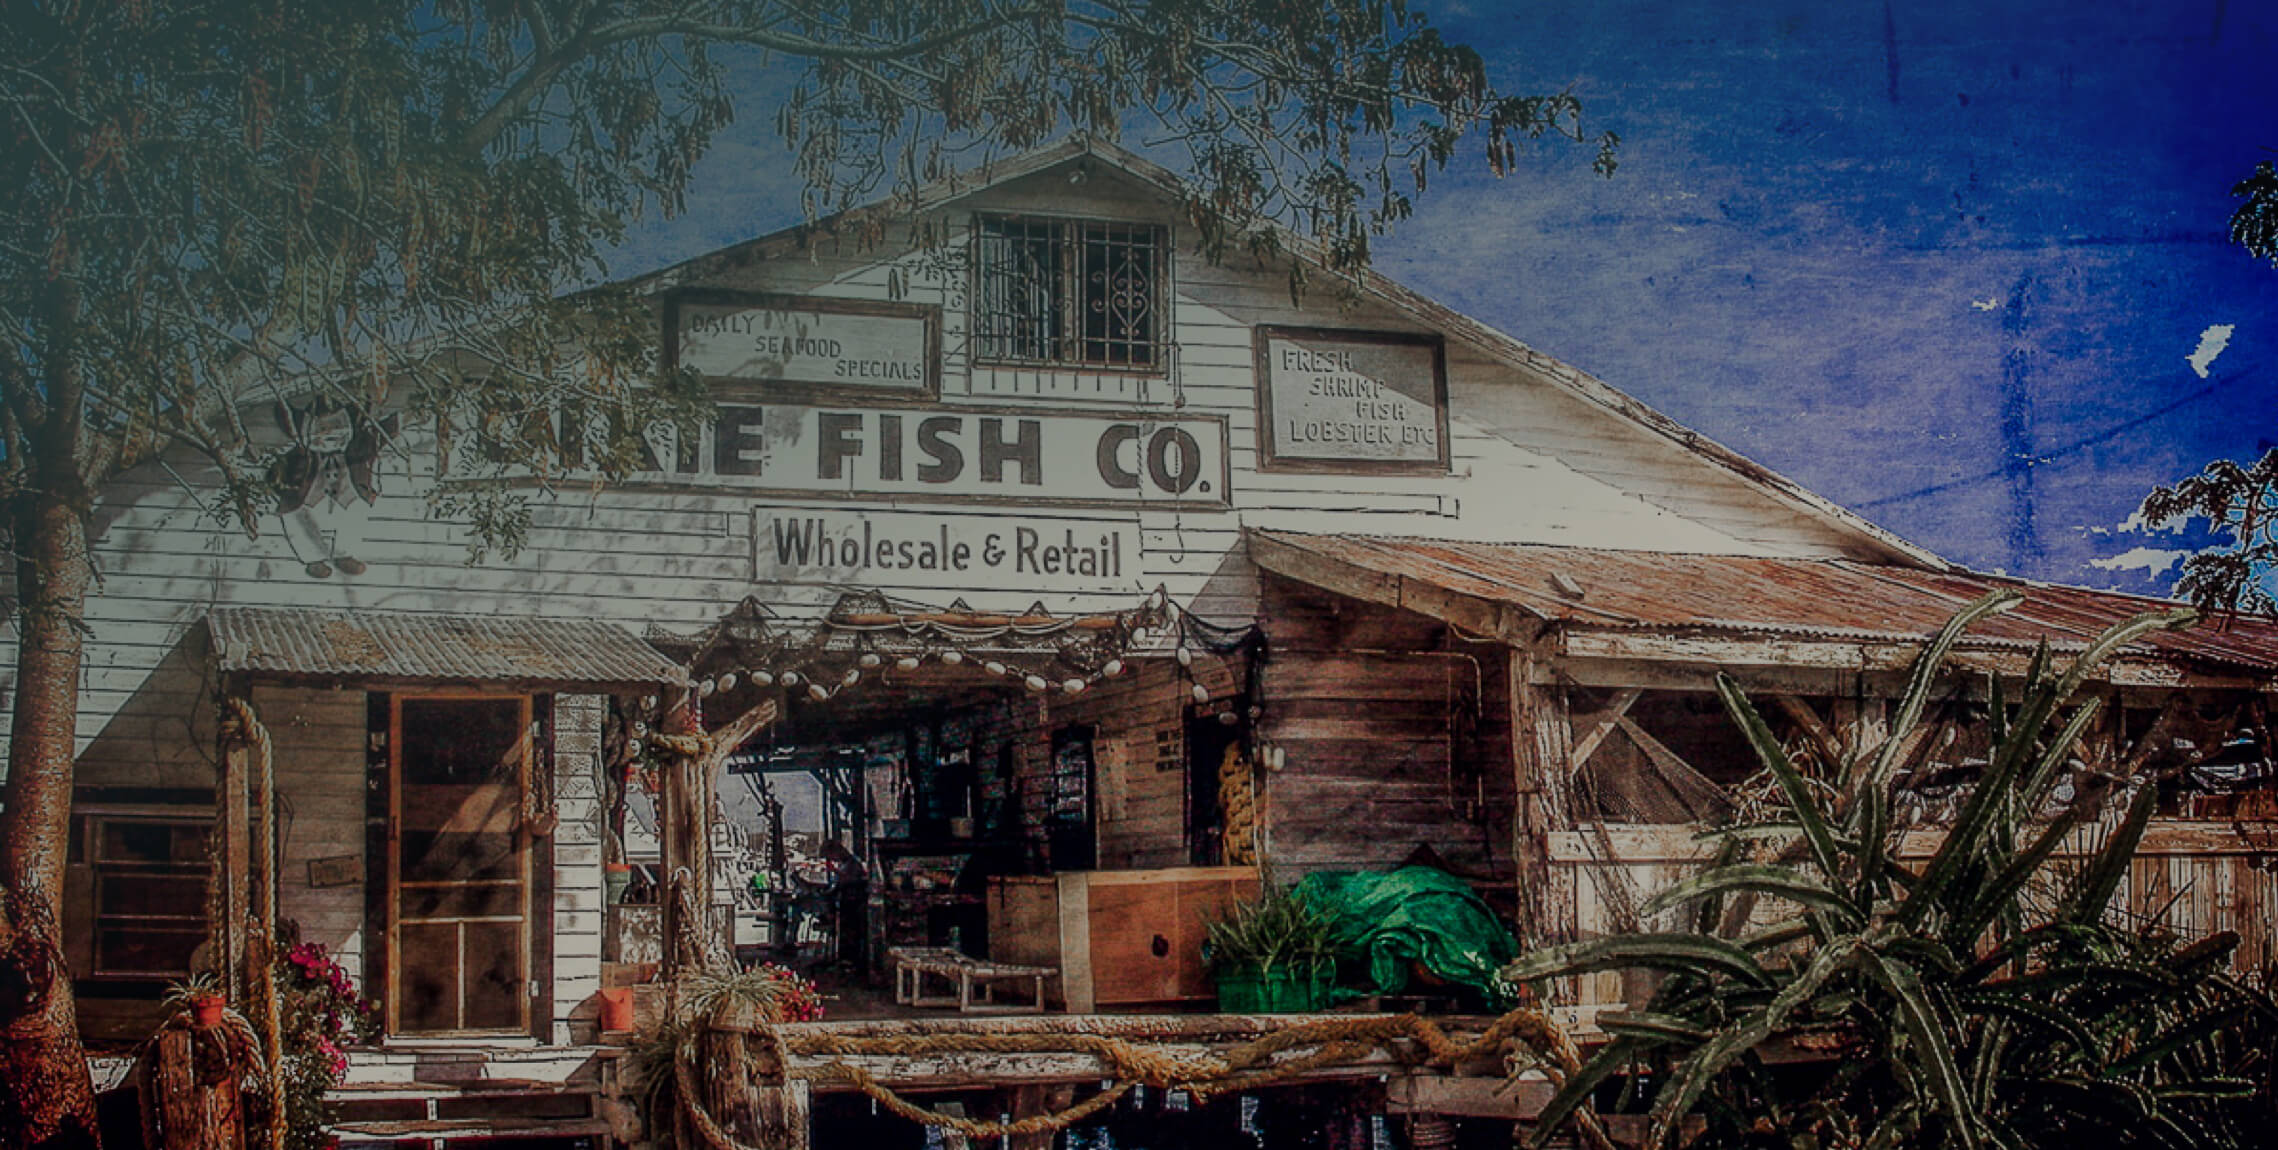 The dixie fish co an original florida fish house happy for Fresh fish company happy hour